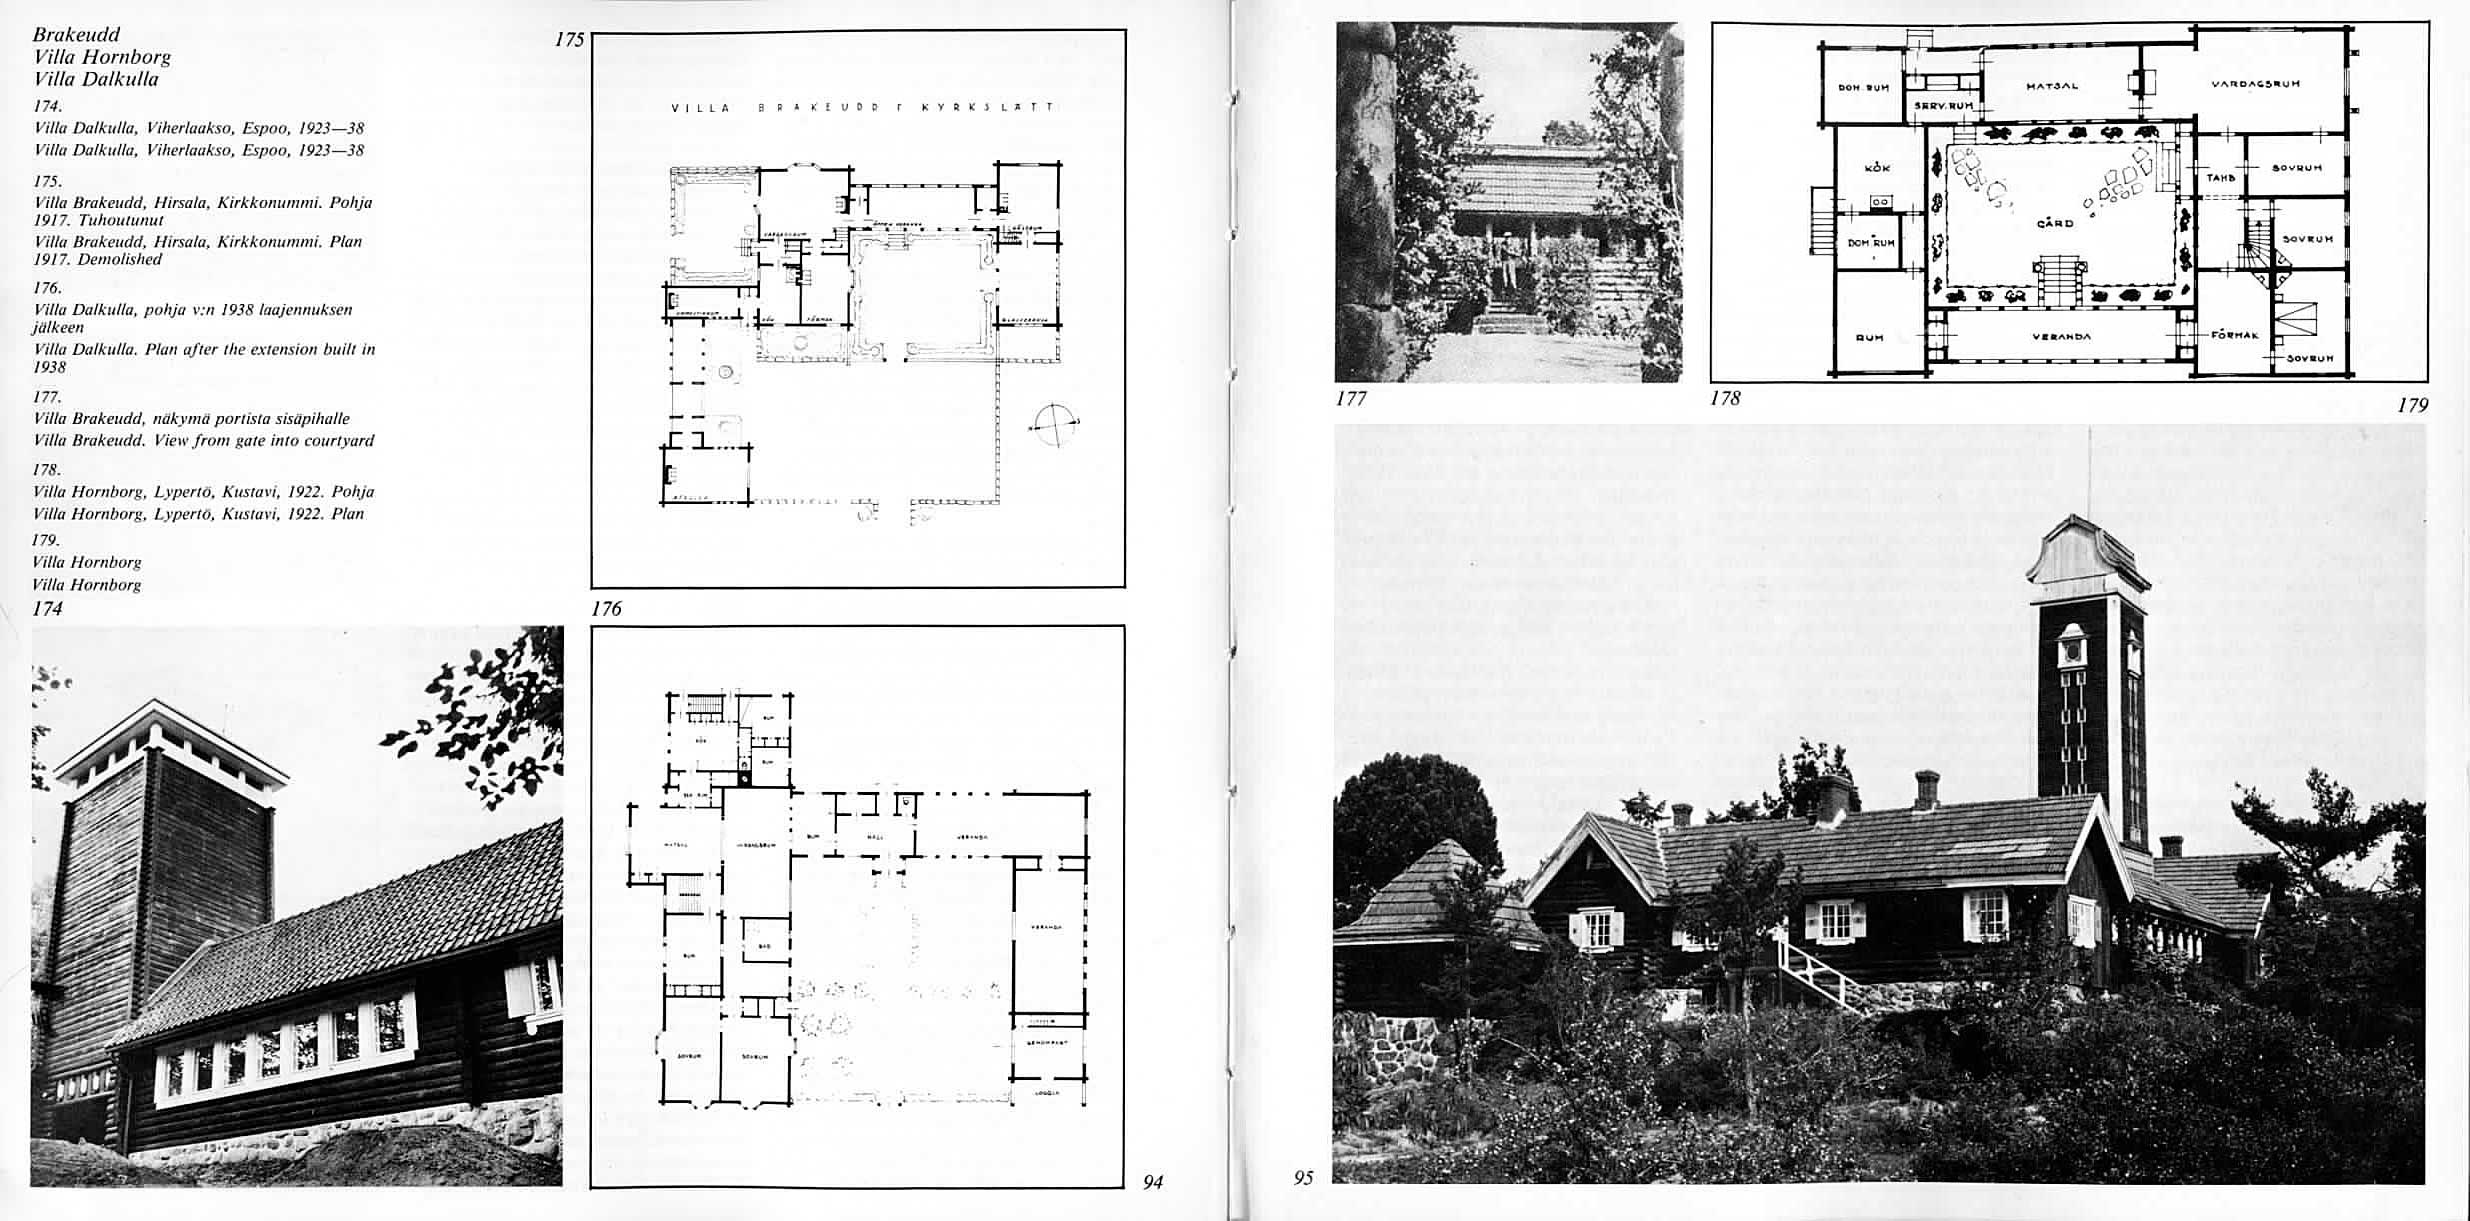 Schematics of Villa Dalkulla and Villa Hornborg